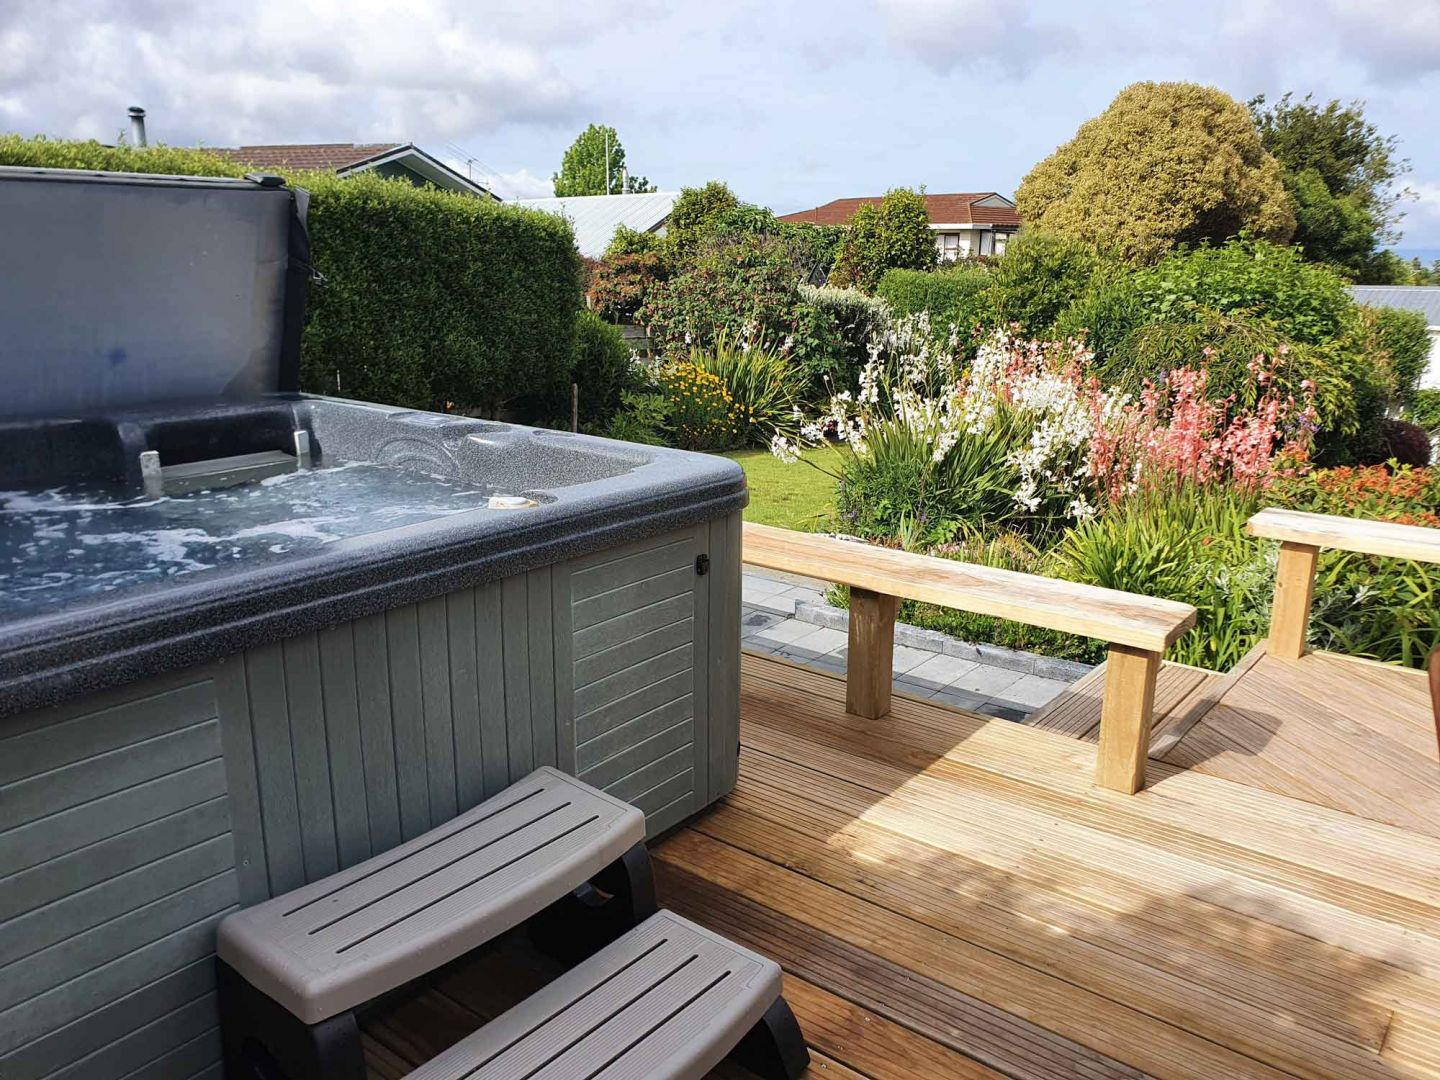 Large Family Holiday Homes in Taupo